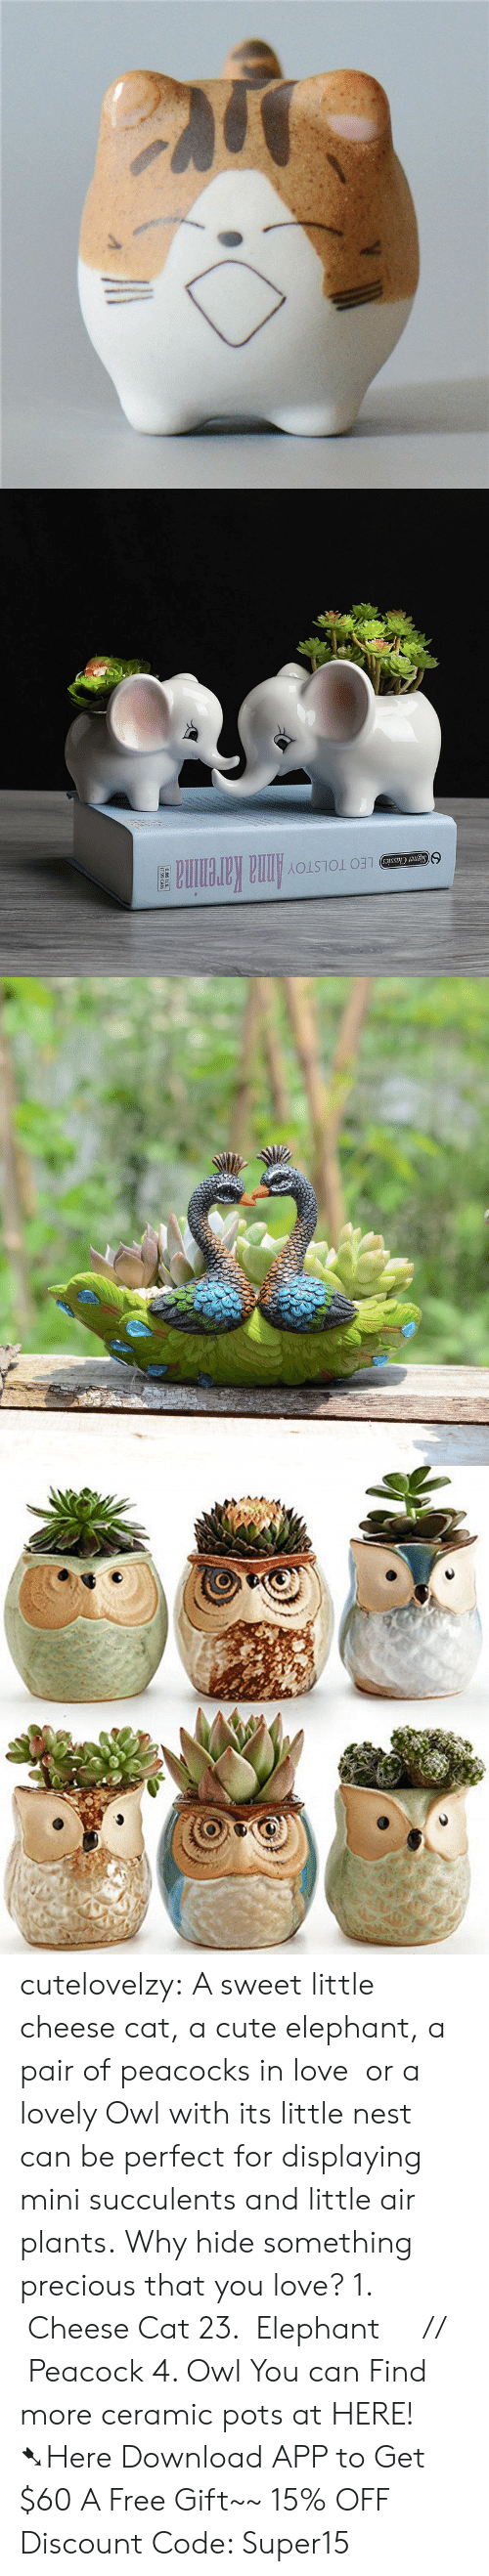 classics: LEO TOLSTOYAnna Karenina  Signet Classics cutelovelzy: A sweet little cheese cat, a cute elephant, a pair of peacocks in love  or a lovely Owl with its little nest can be perfect for displaying mini succulents and little air plants. Why hide something precious that you love? 1.  Cheese Cat  23.  Elephant     //    Peacock  4. Owl  You can Find more ceramic pots at HERE!  ➷Here Download APP to Get $60  A Free Gift~~  15% OFF Discount Code: Super15